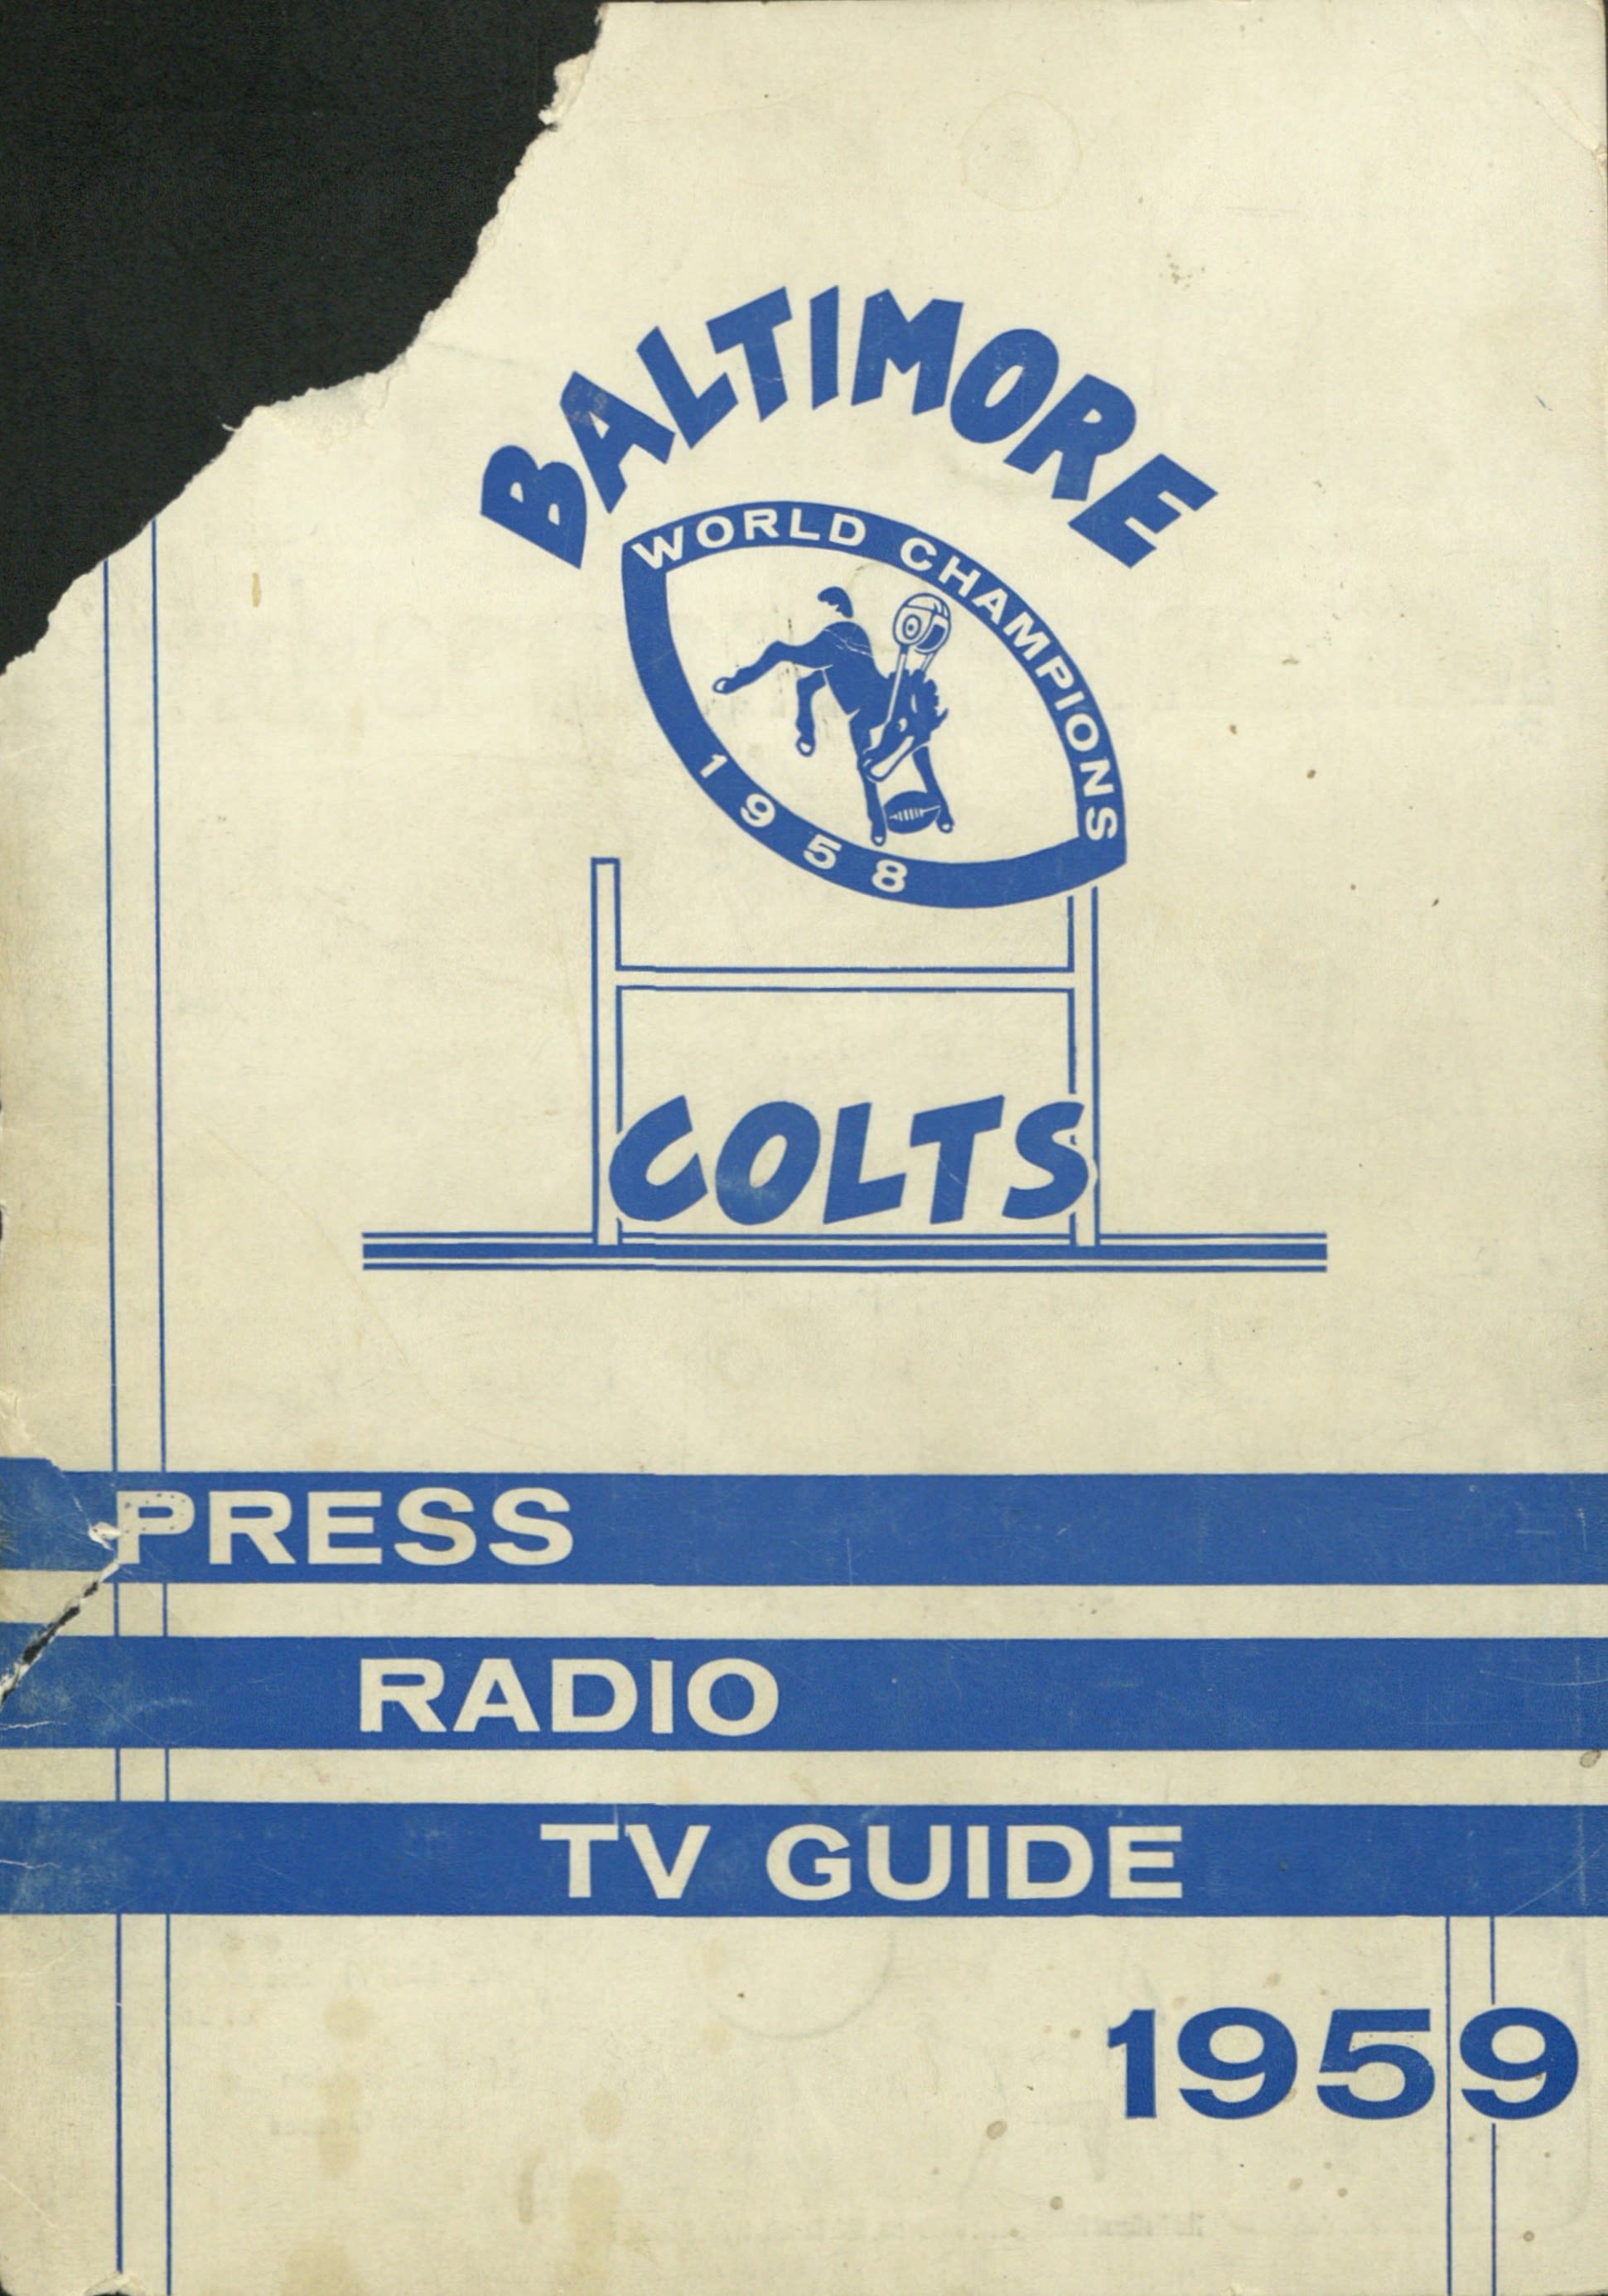 COLTS_1959_Cover